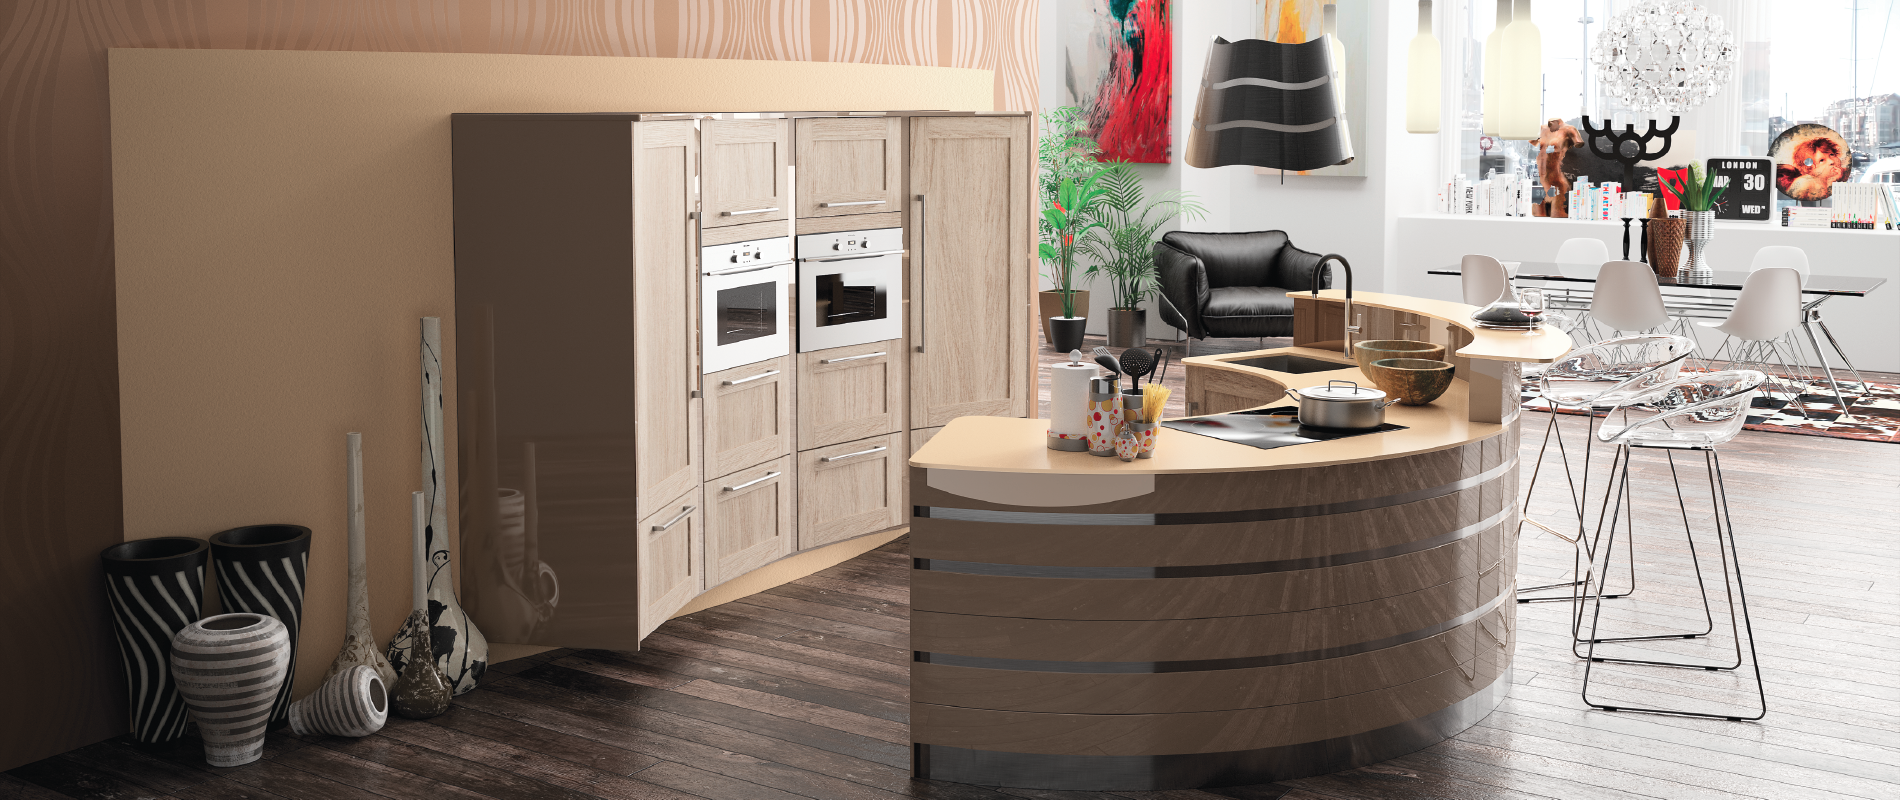 modele de cuisine americaine avec bar. Black Bedroom Furniture Sets. Home Design Ideas